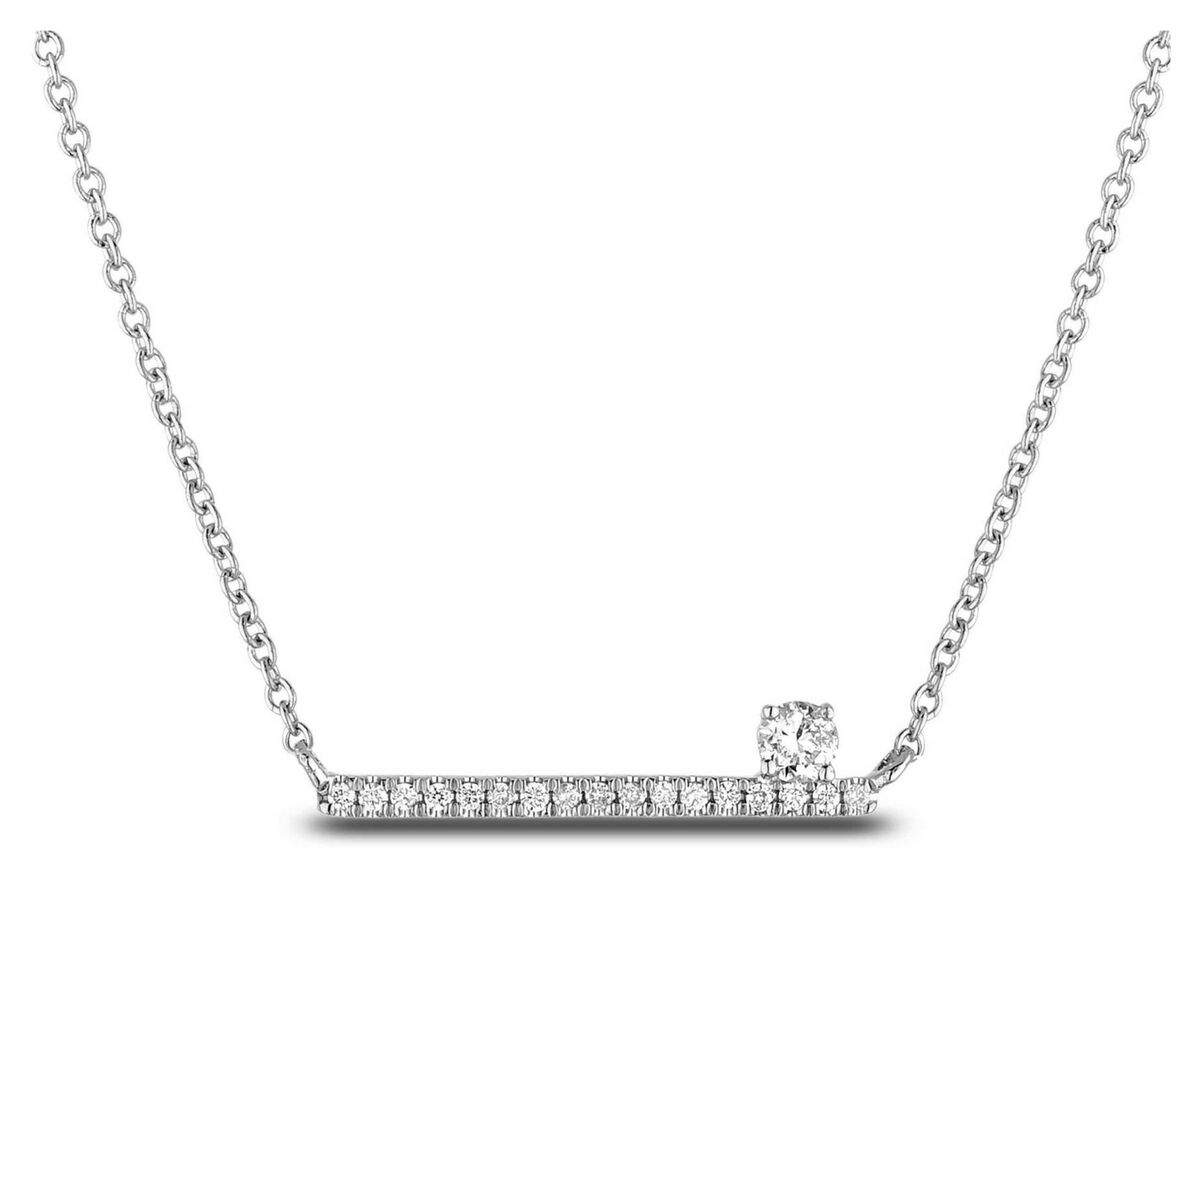 Diamond Necklaces SJL-MX-ND2683 (Pendants)